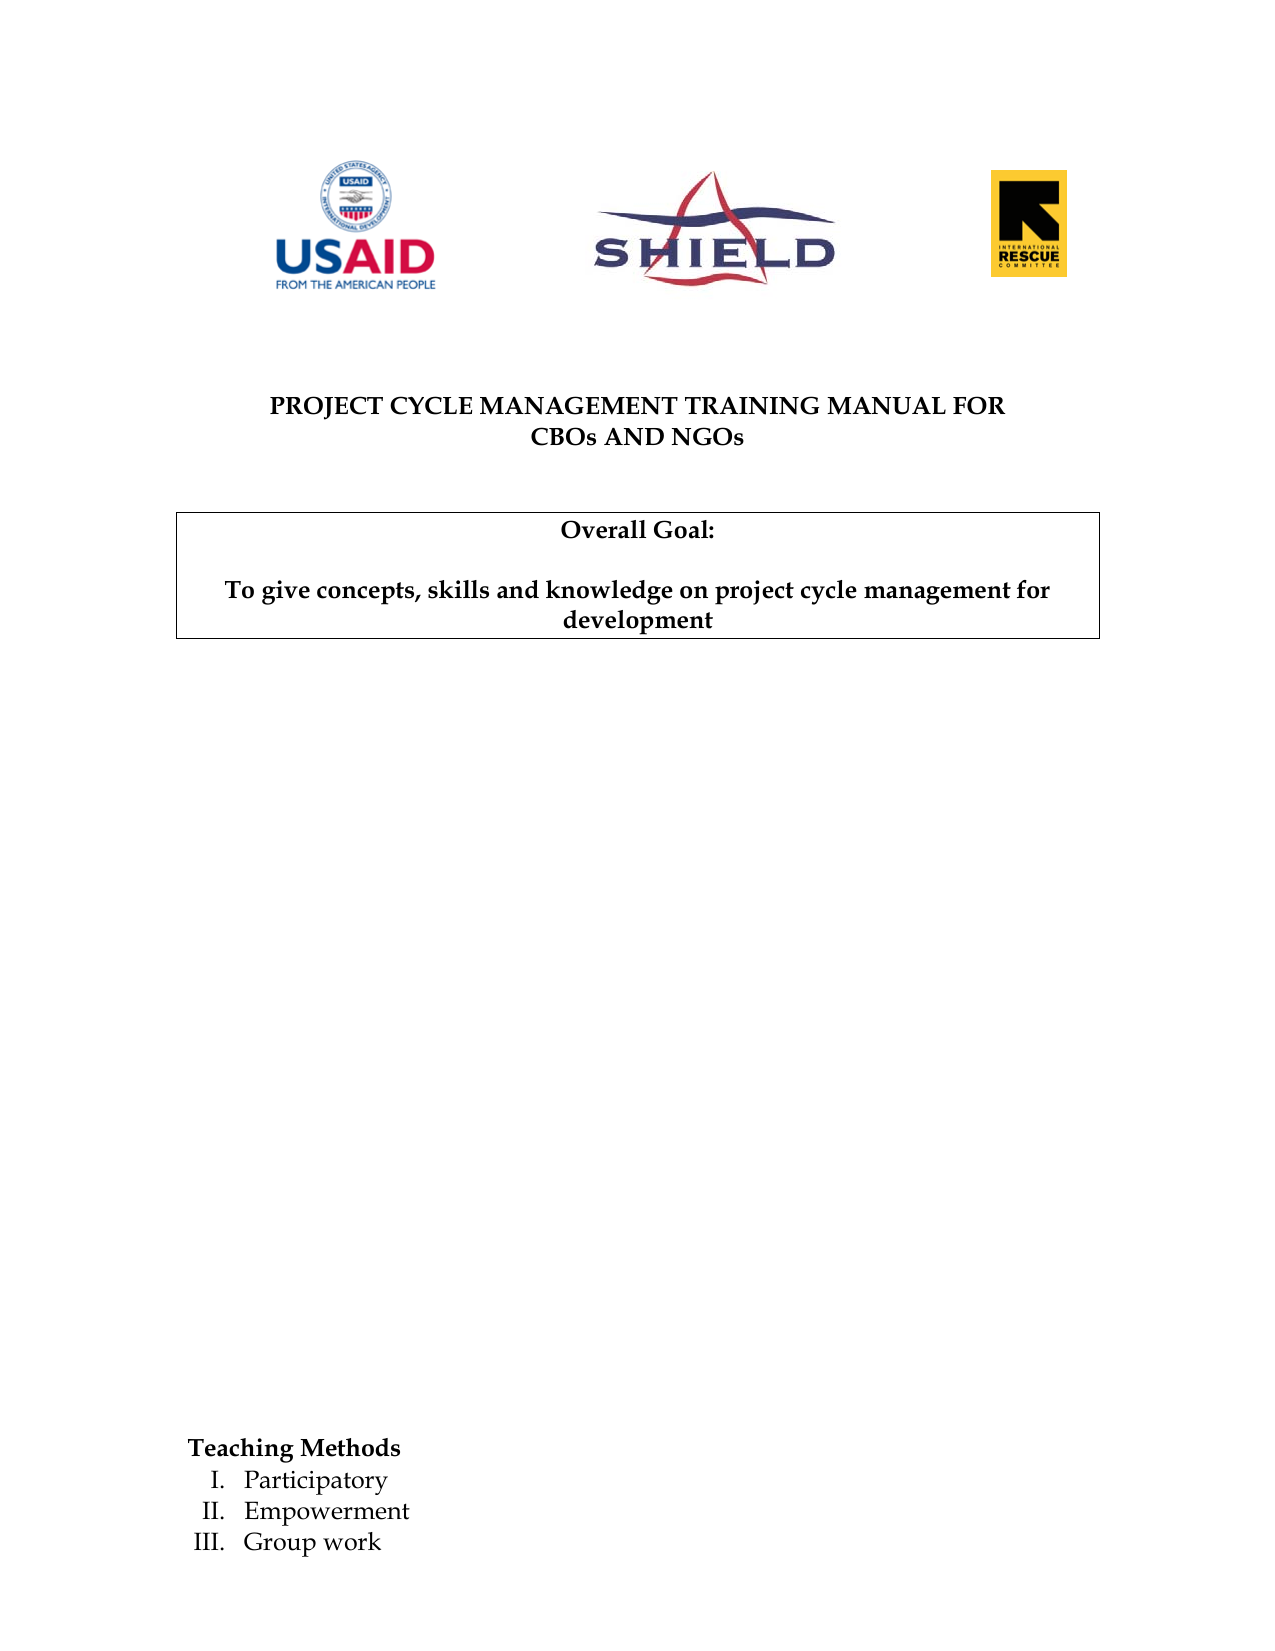 Project Cycle Management Training Manual For